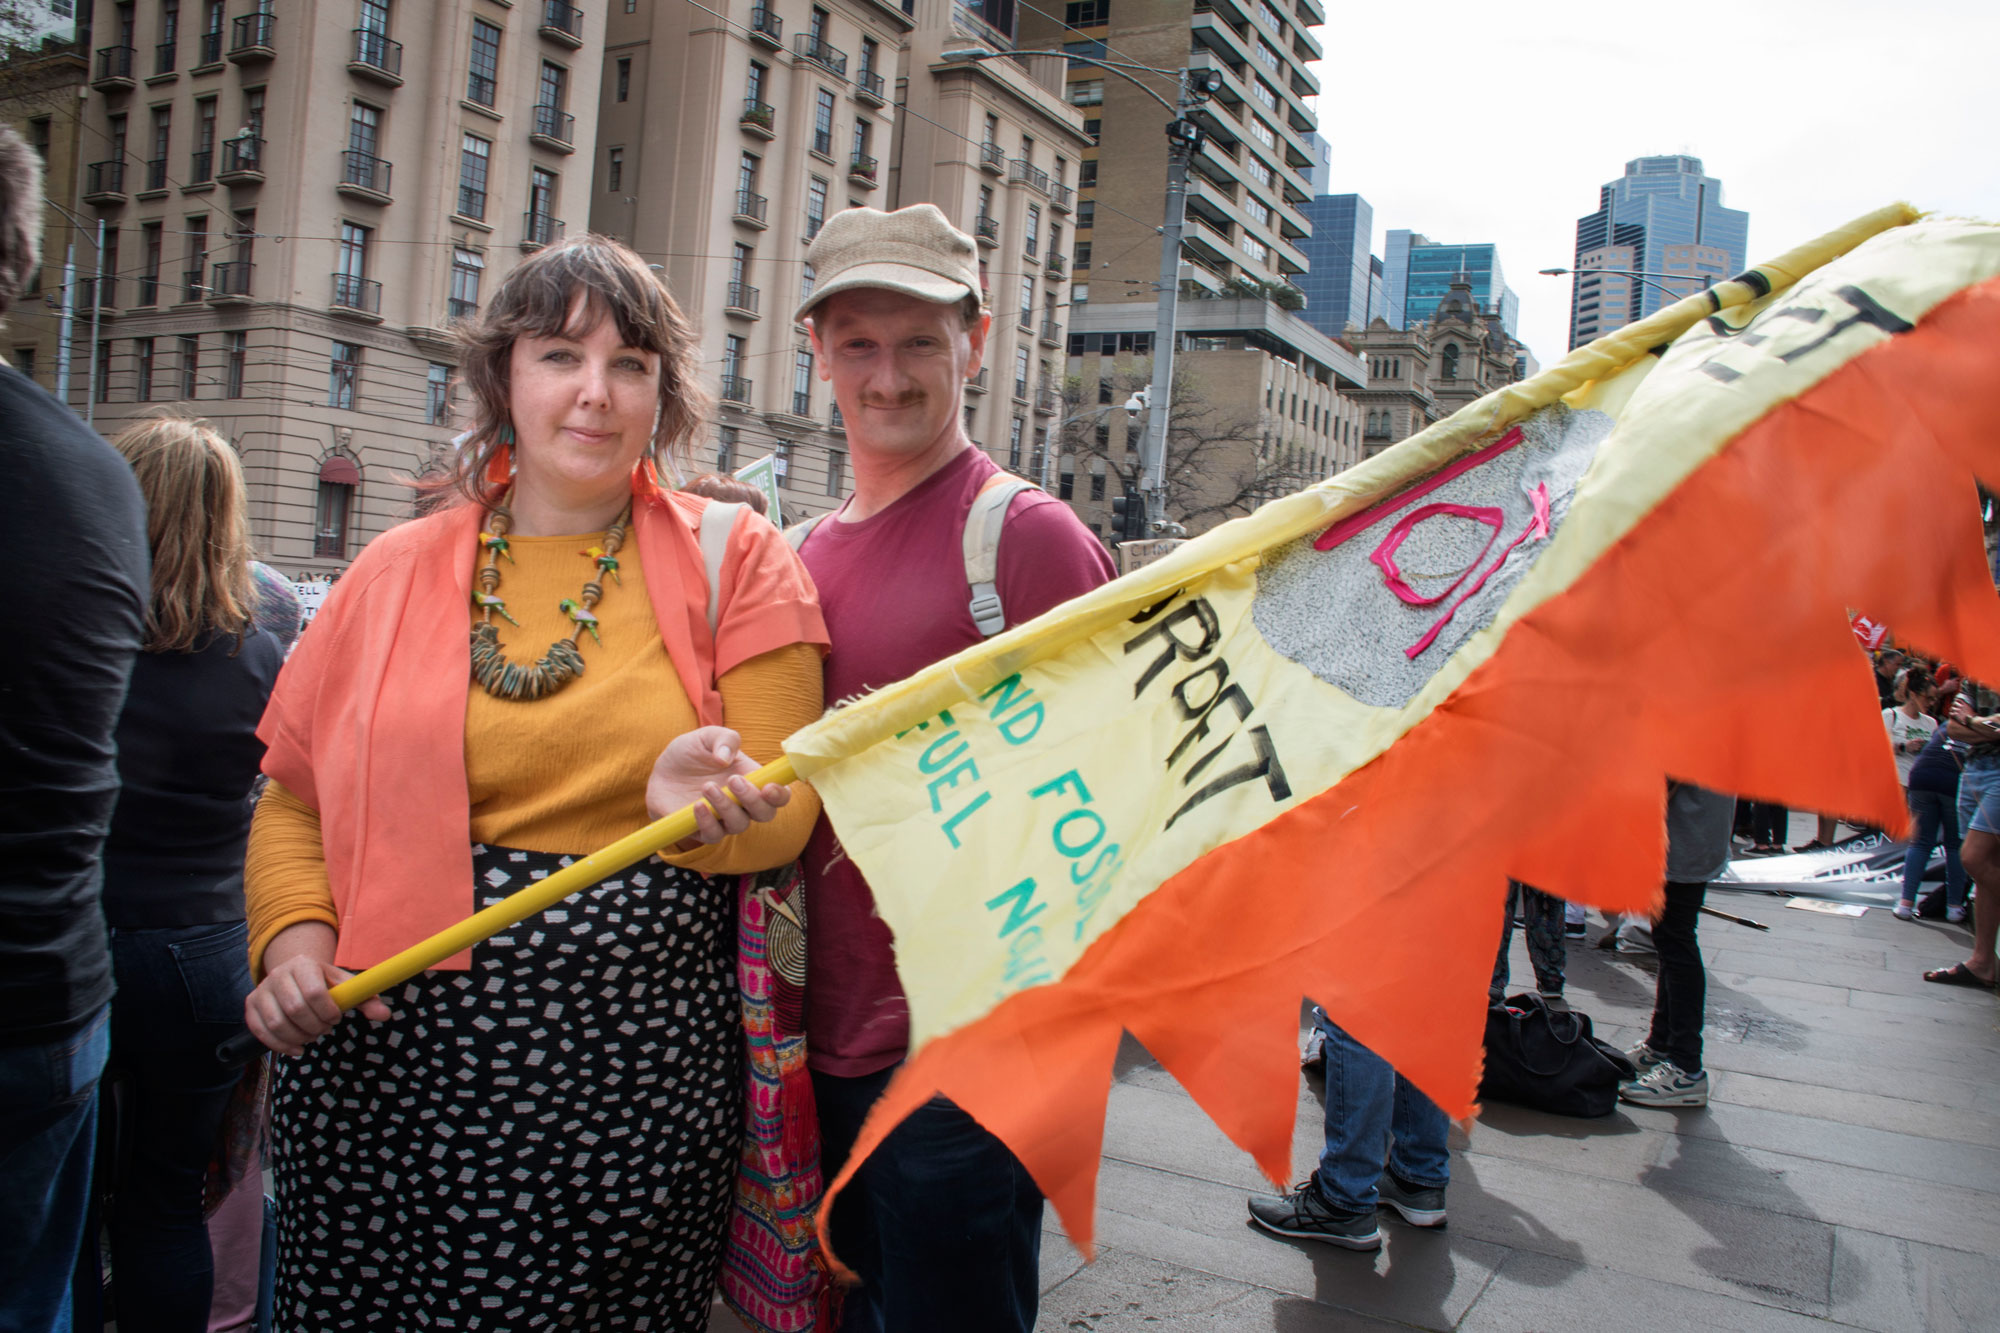 Gini Merange (left) is a primary school teacher who took a day off to strike saying,